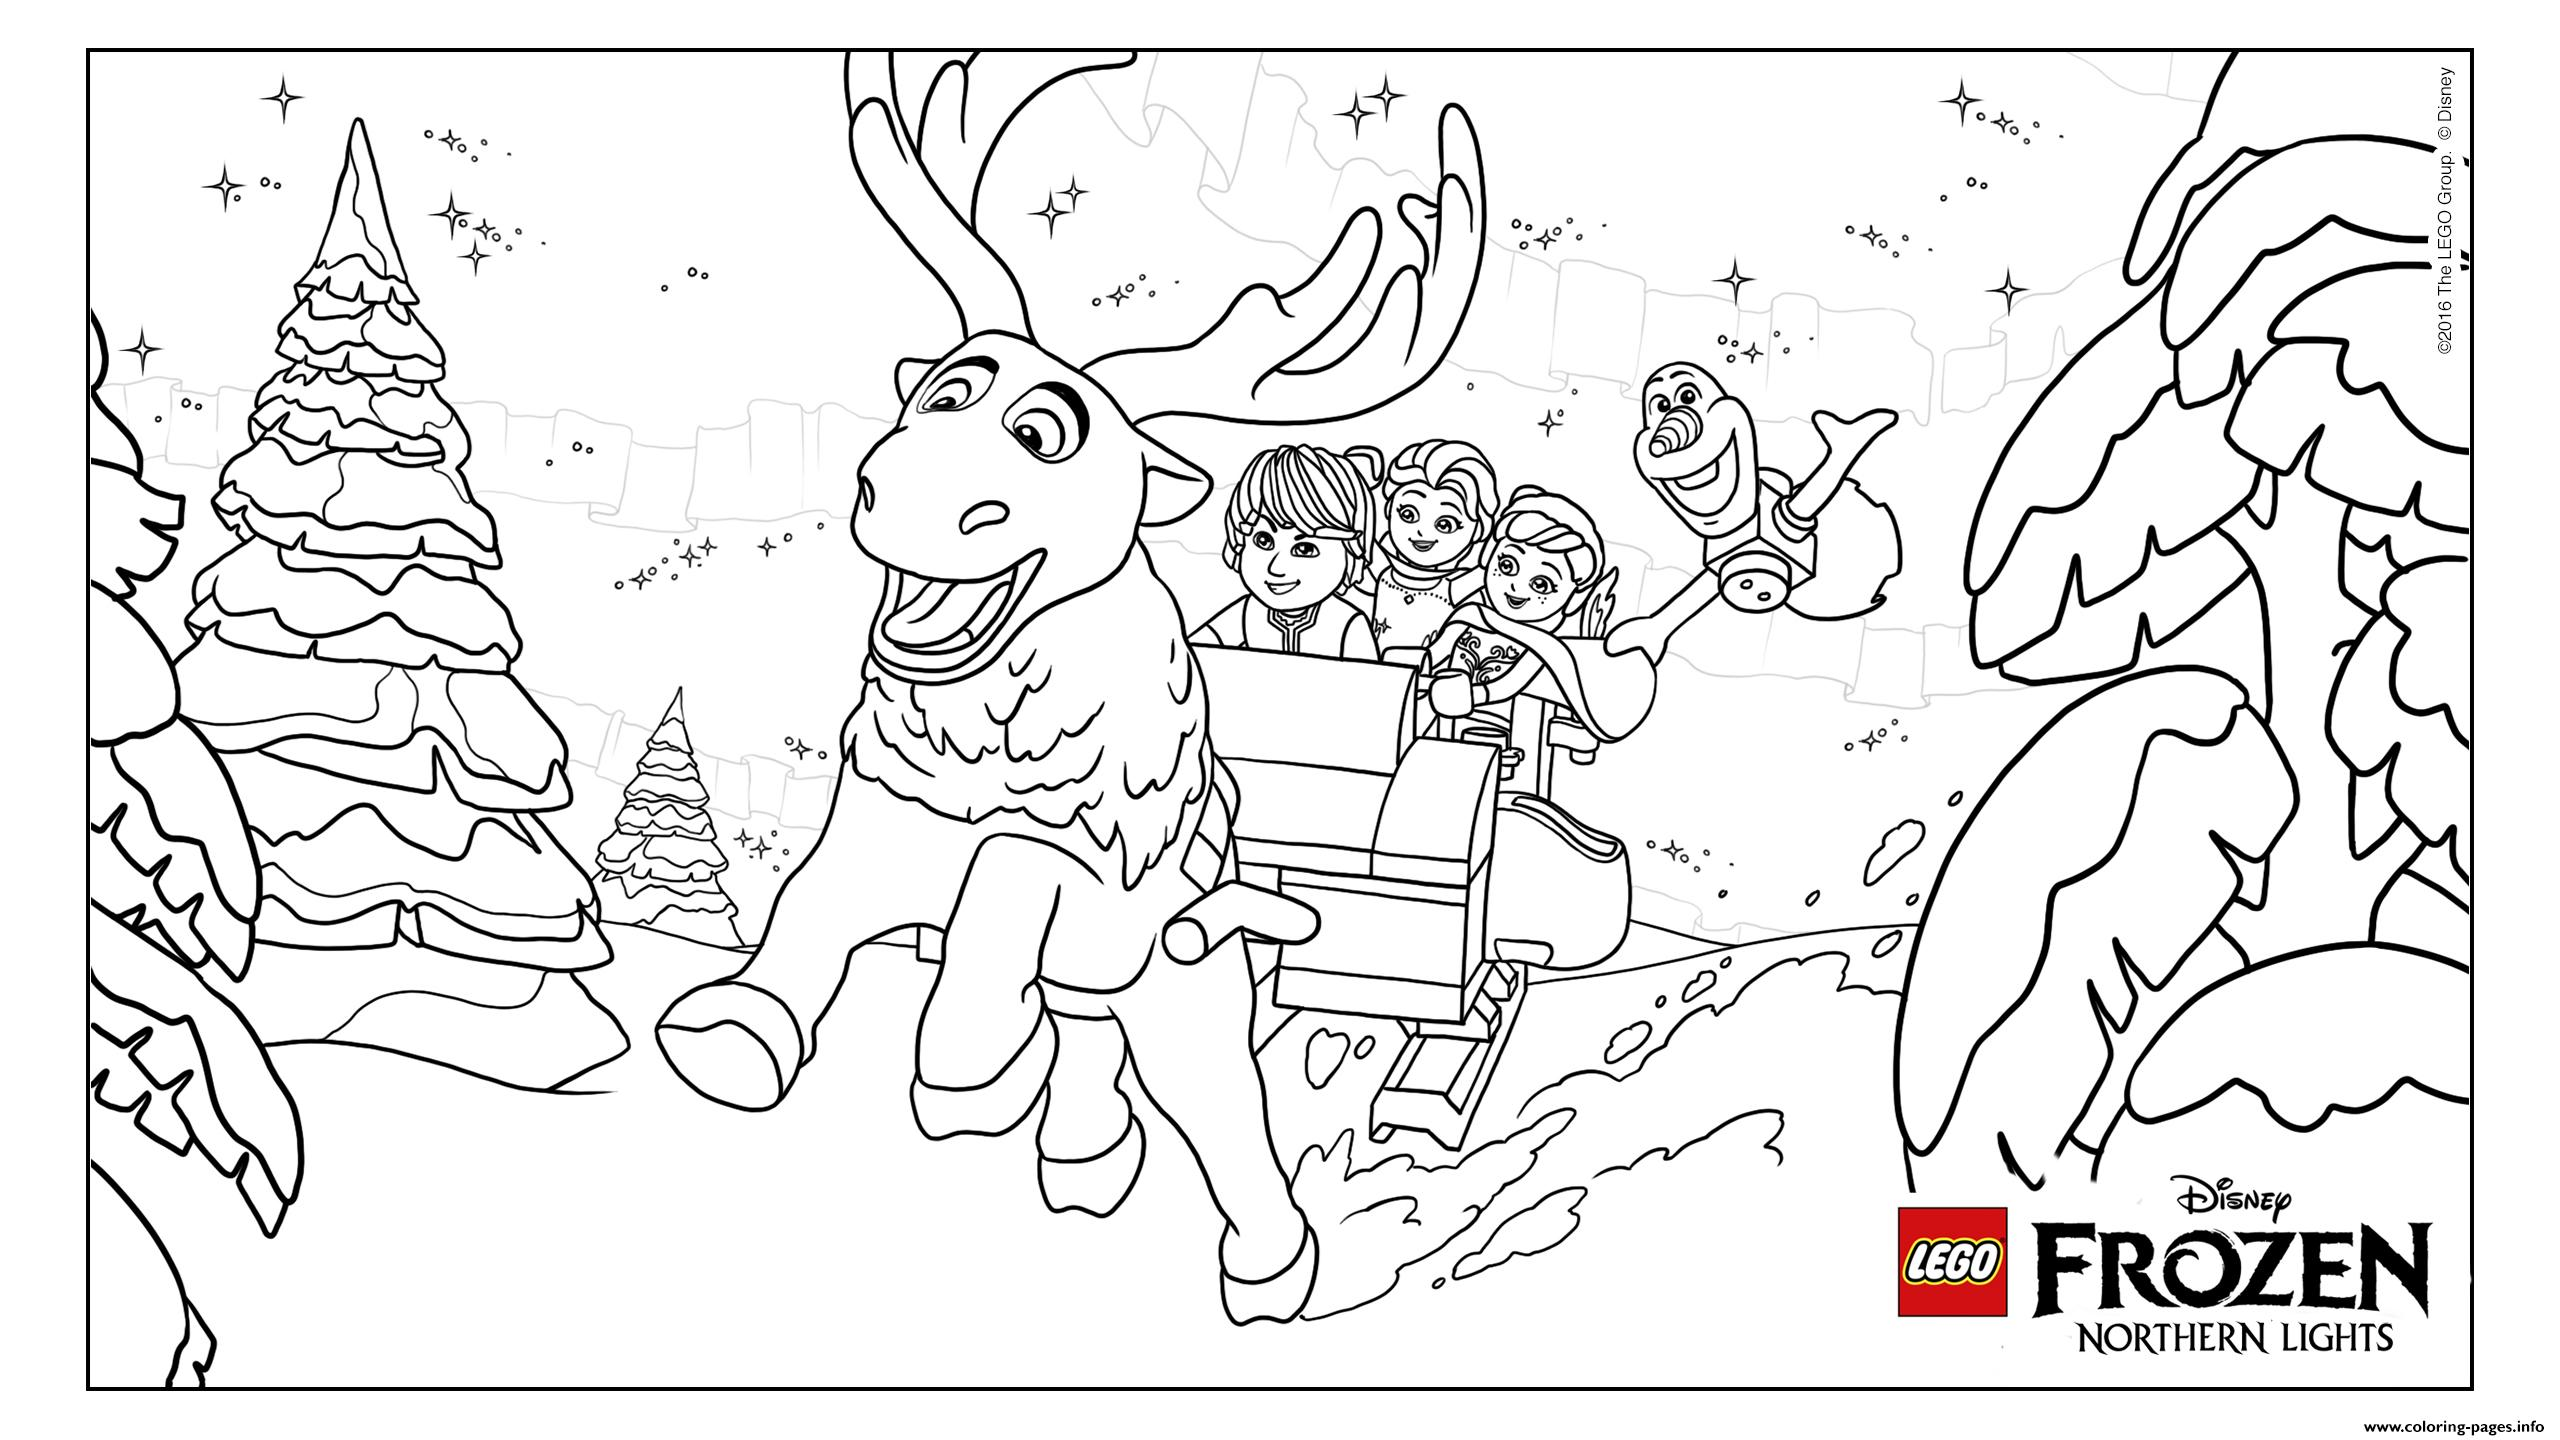 Coloring Pages Lego Frozen : Frozen nl group lego disney coloring pages printable